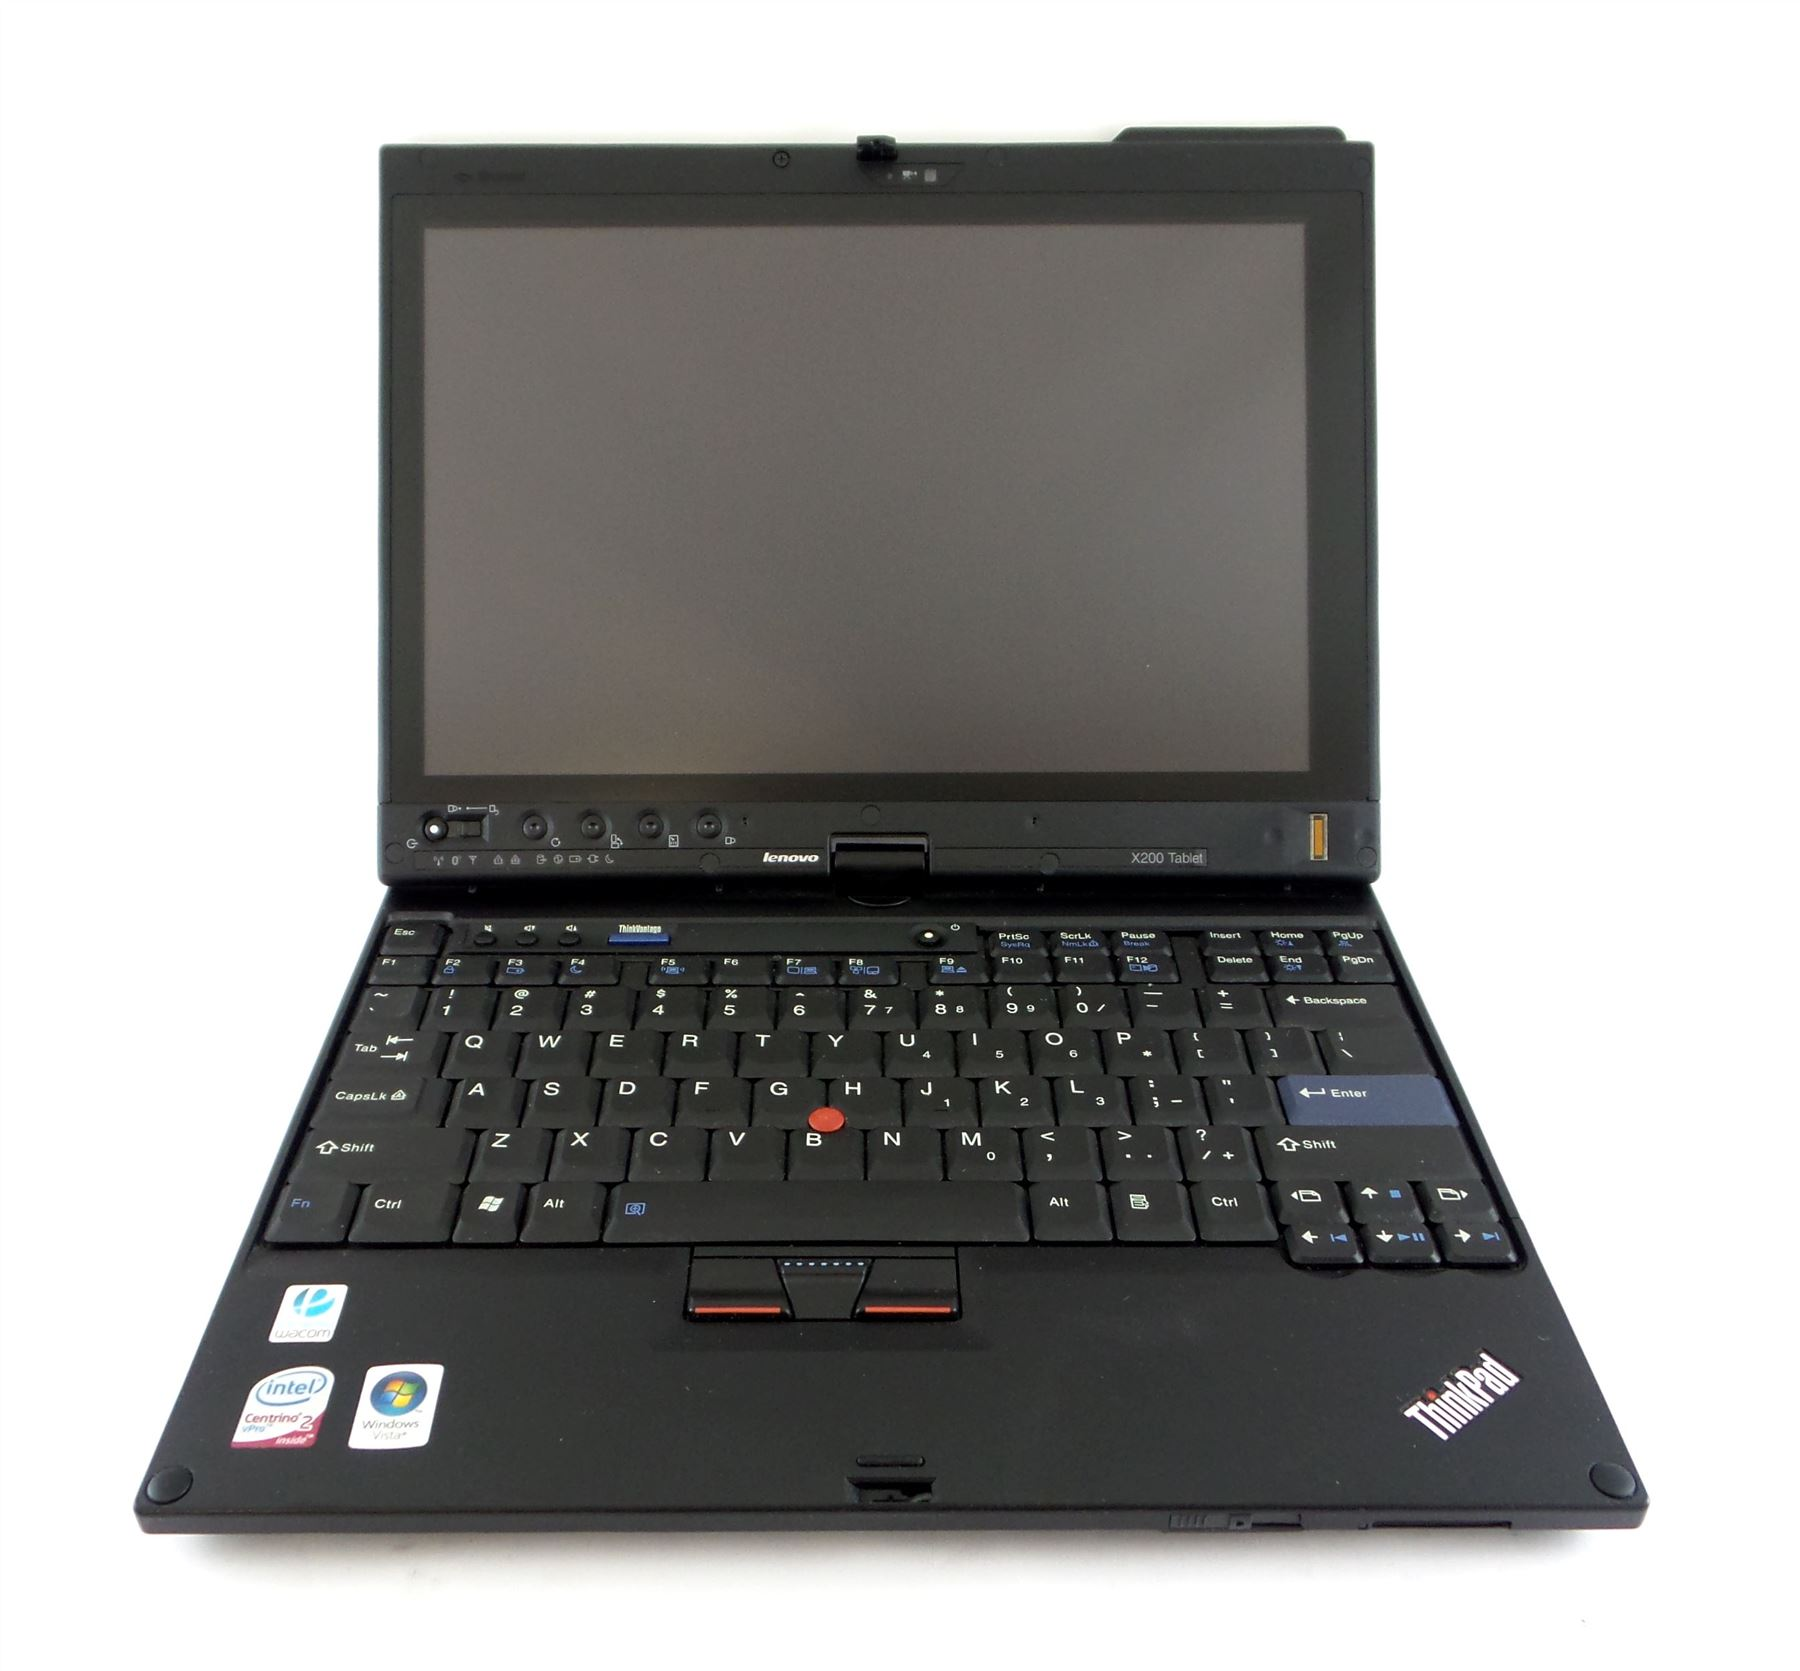 Laptop Tablett Lenovo Thinkpad X200 Tablet Laptop 12 Quot Intel 1 86ghz 160gb